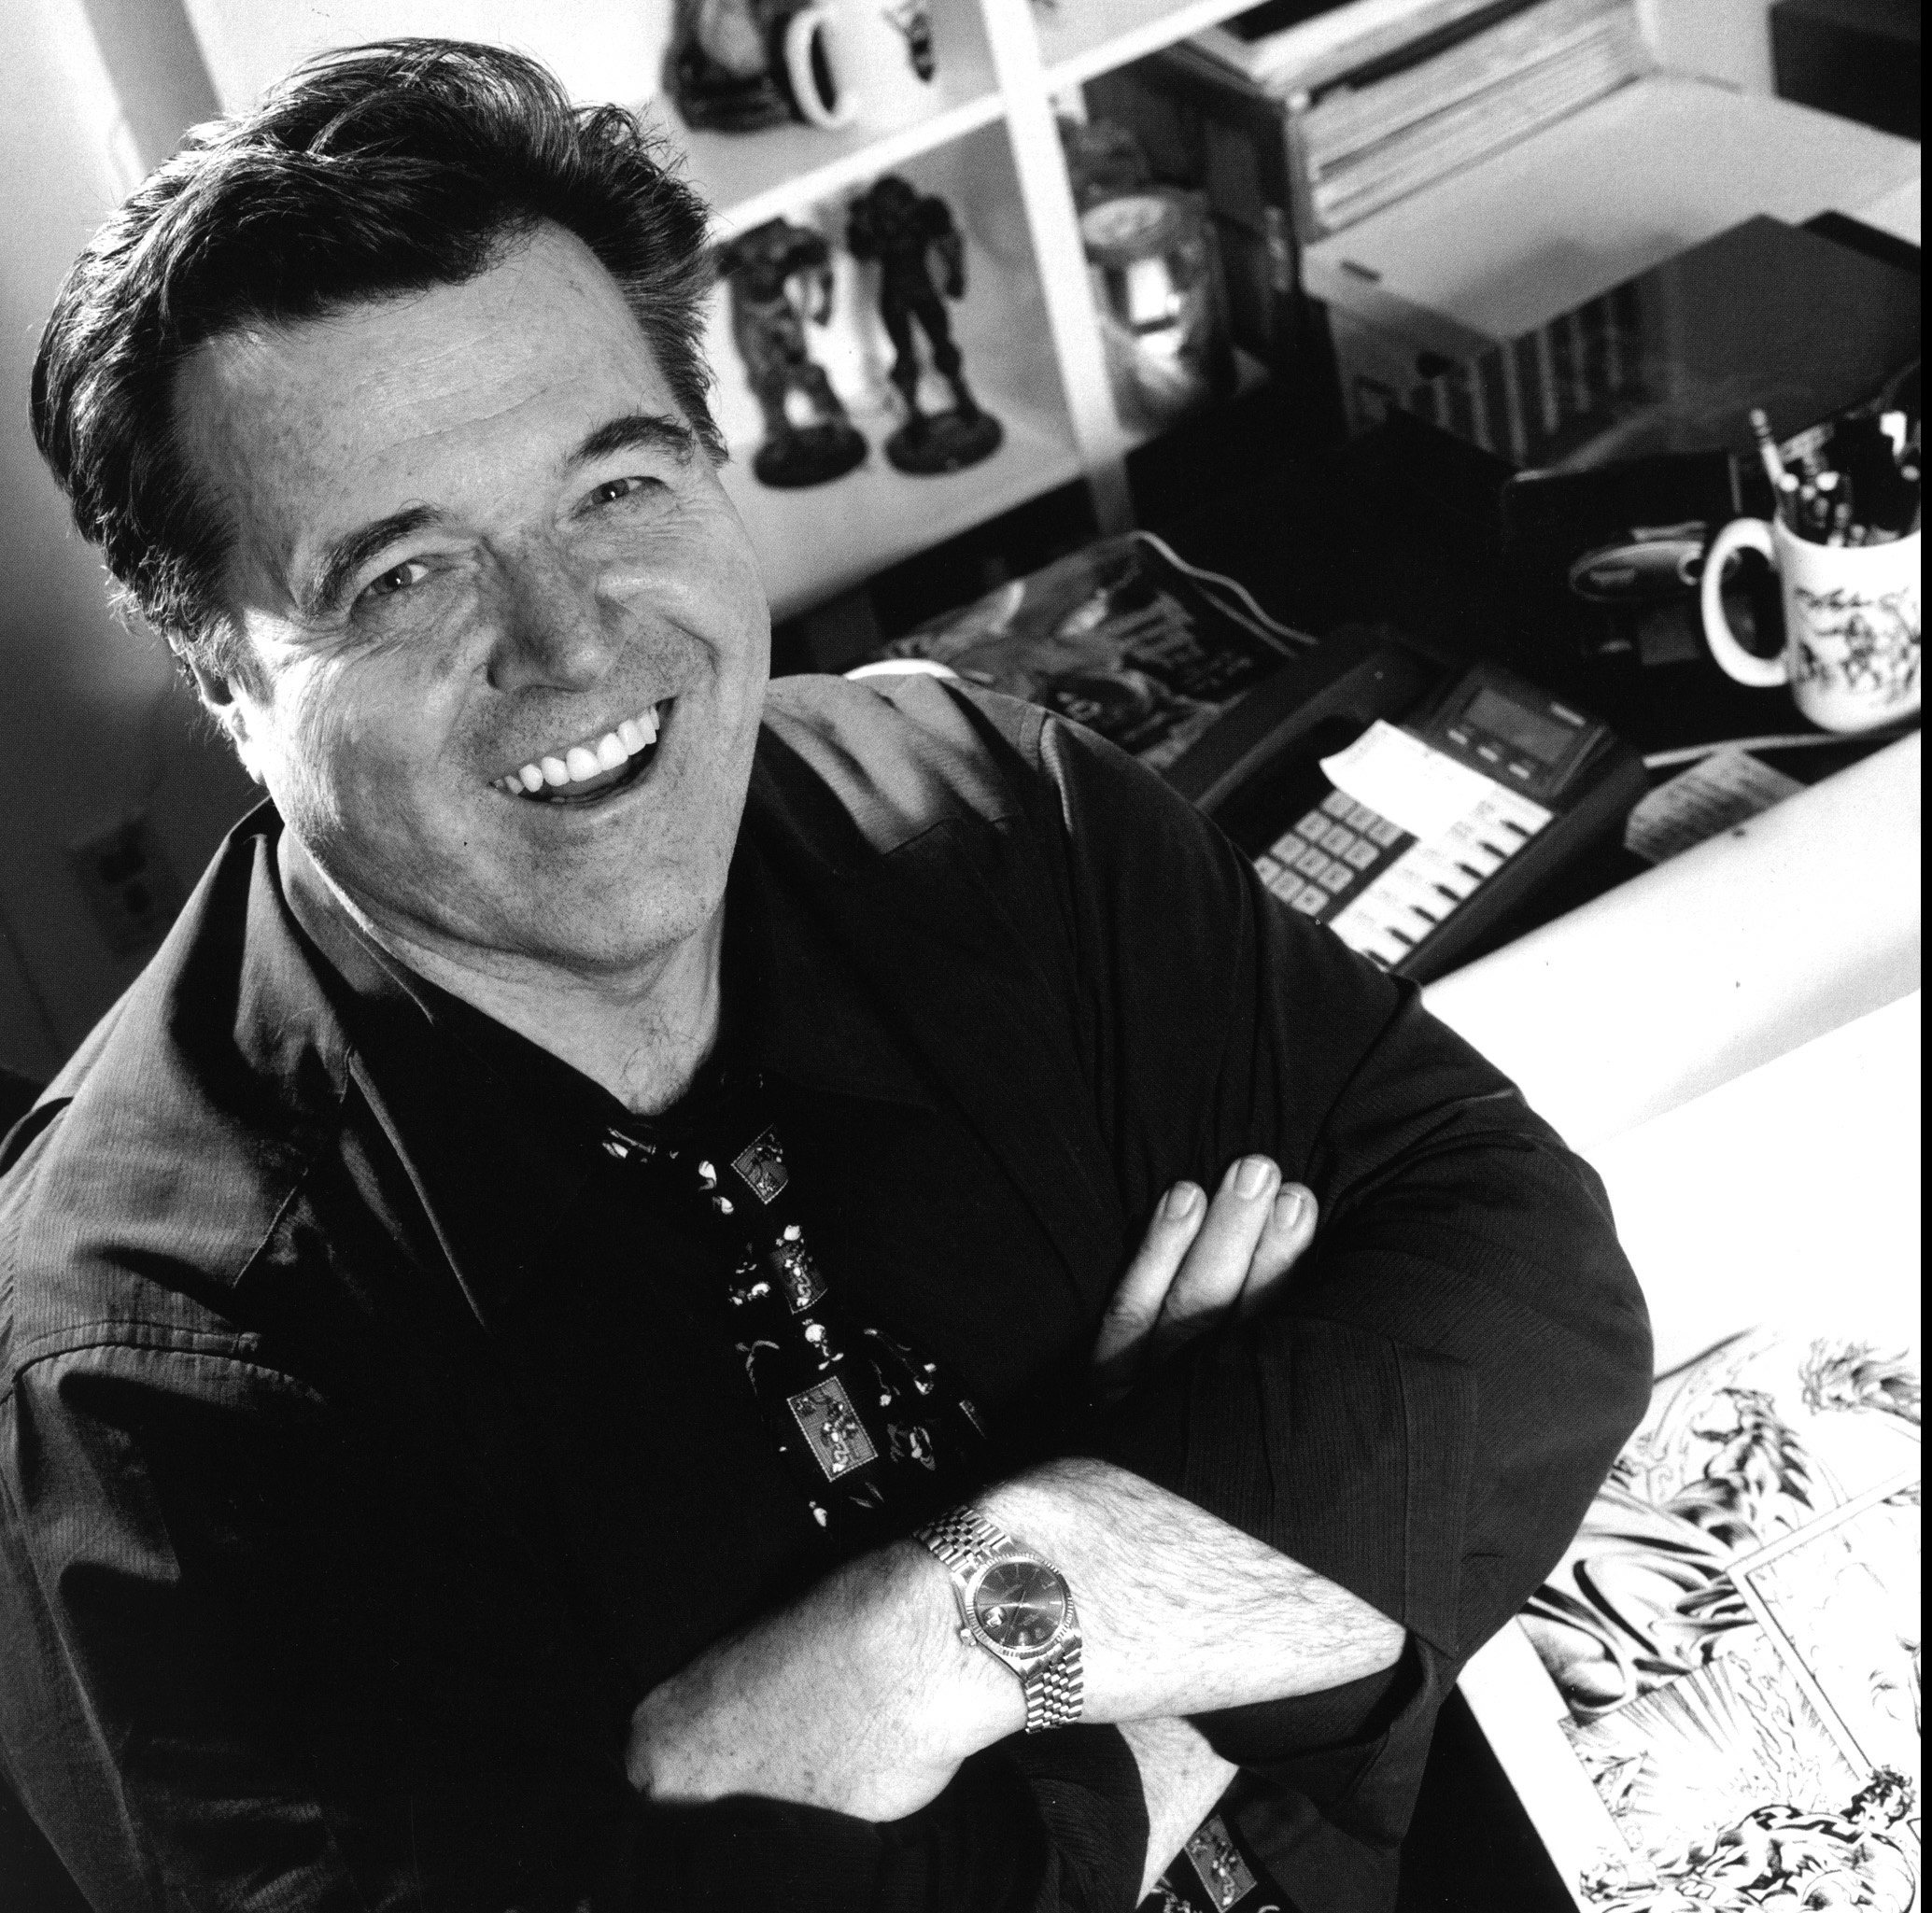 FAMED BATMAN/GREEN LANTERN ARTIST NEAL ADAMS WILL BE HERE SEPTEMBER 24TH FROM 12 NOON TO 3PM DOING SIGNINGS, SKETCHES, E.T.C.! - NealAdams_portrait